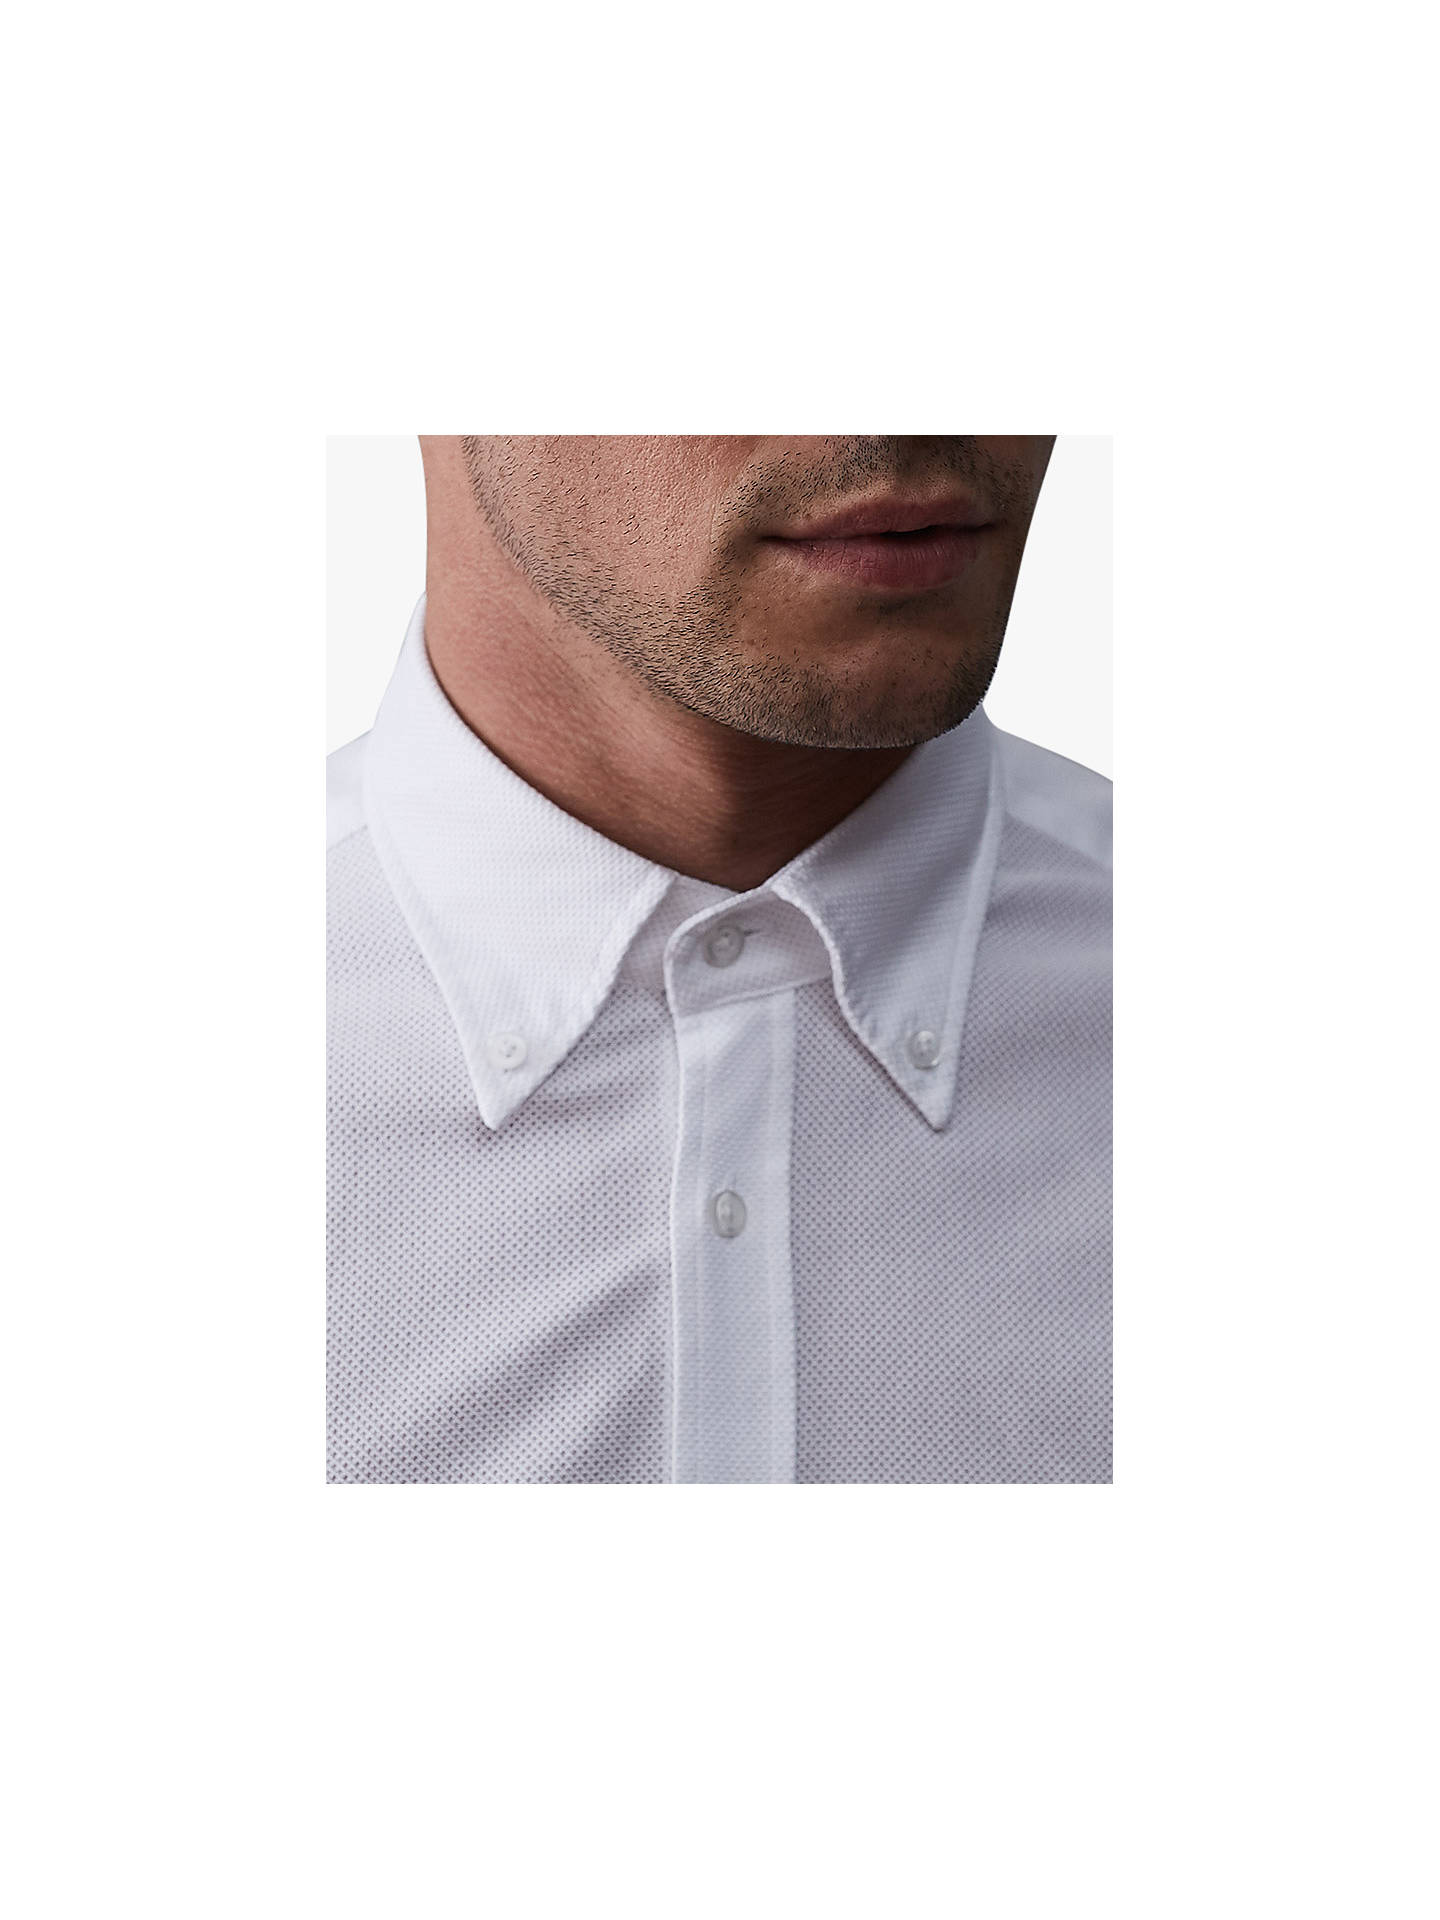 Buy Reiss Halliday Textured Slim Fit Shirt, White, S Online at johnlewis.com